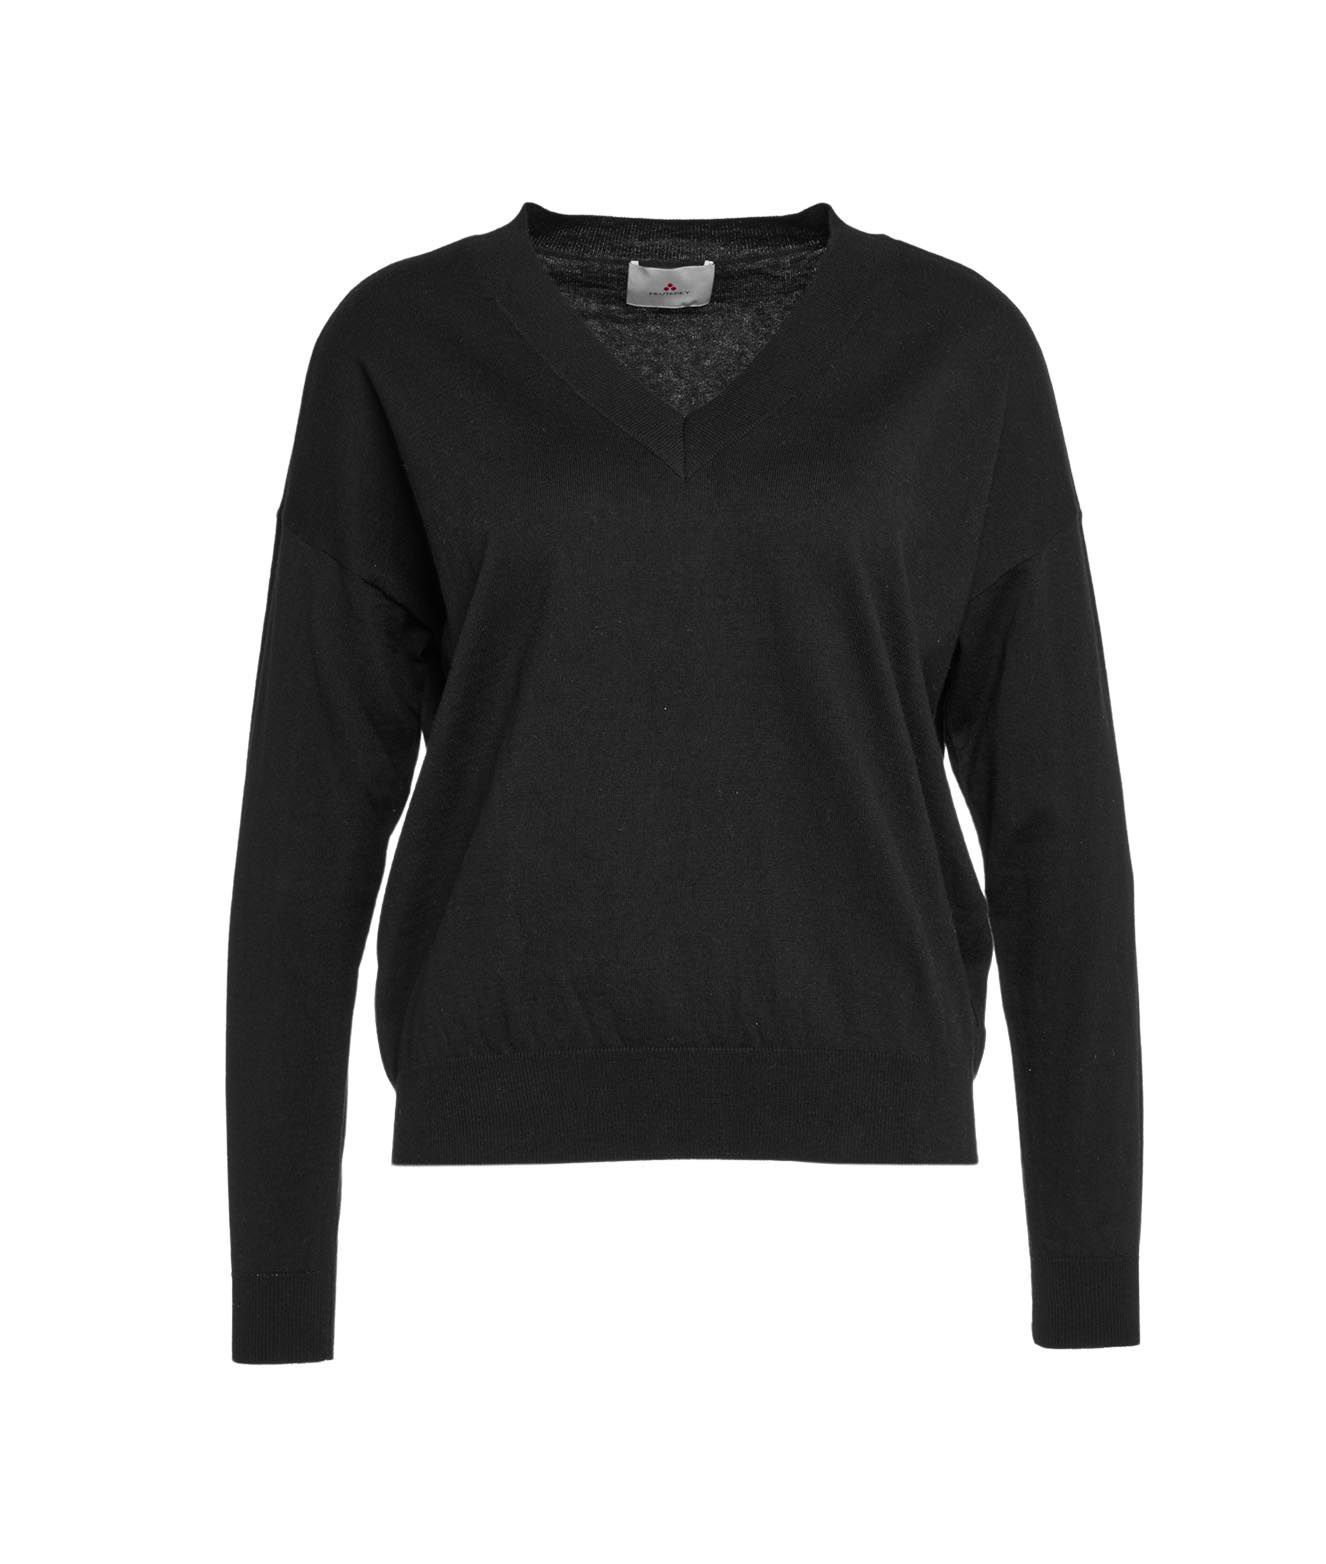 Peuterey PEUTEREY WOMEN'S PED35329901192111NER BLACK OTHER MATERIALS SWEATER